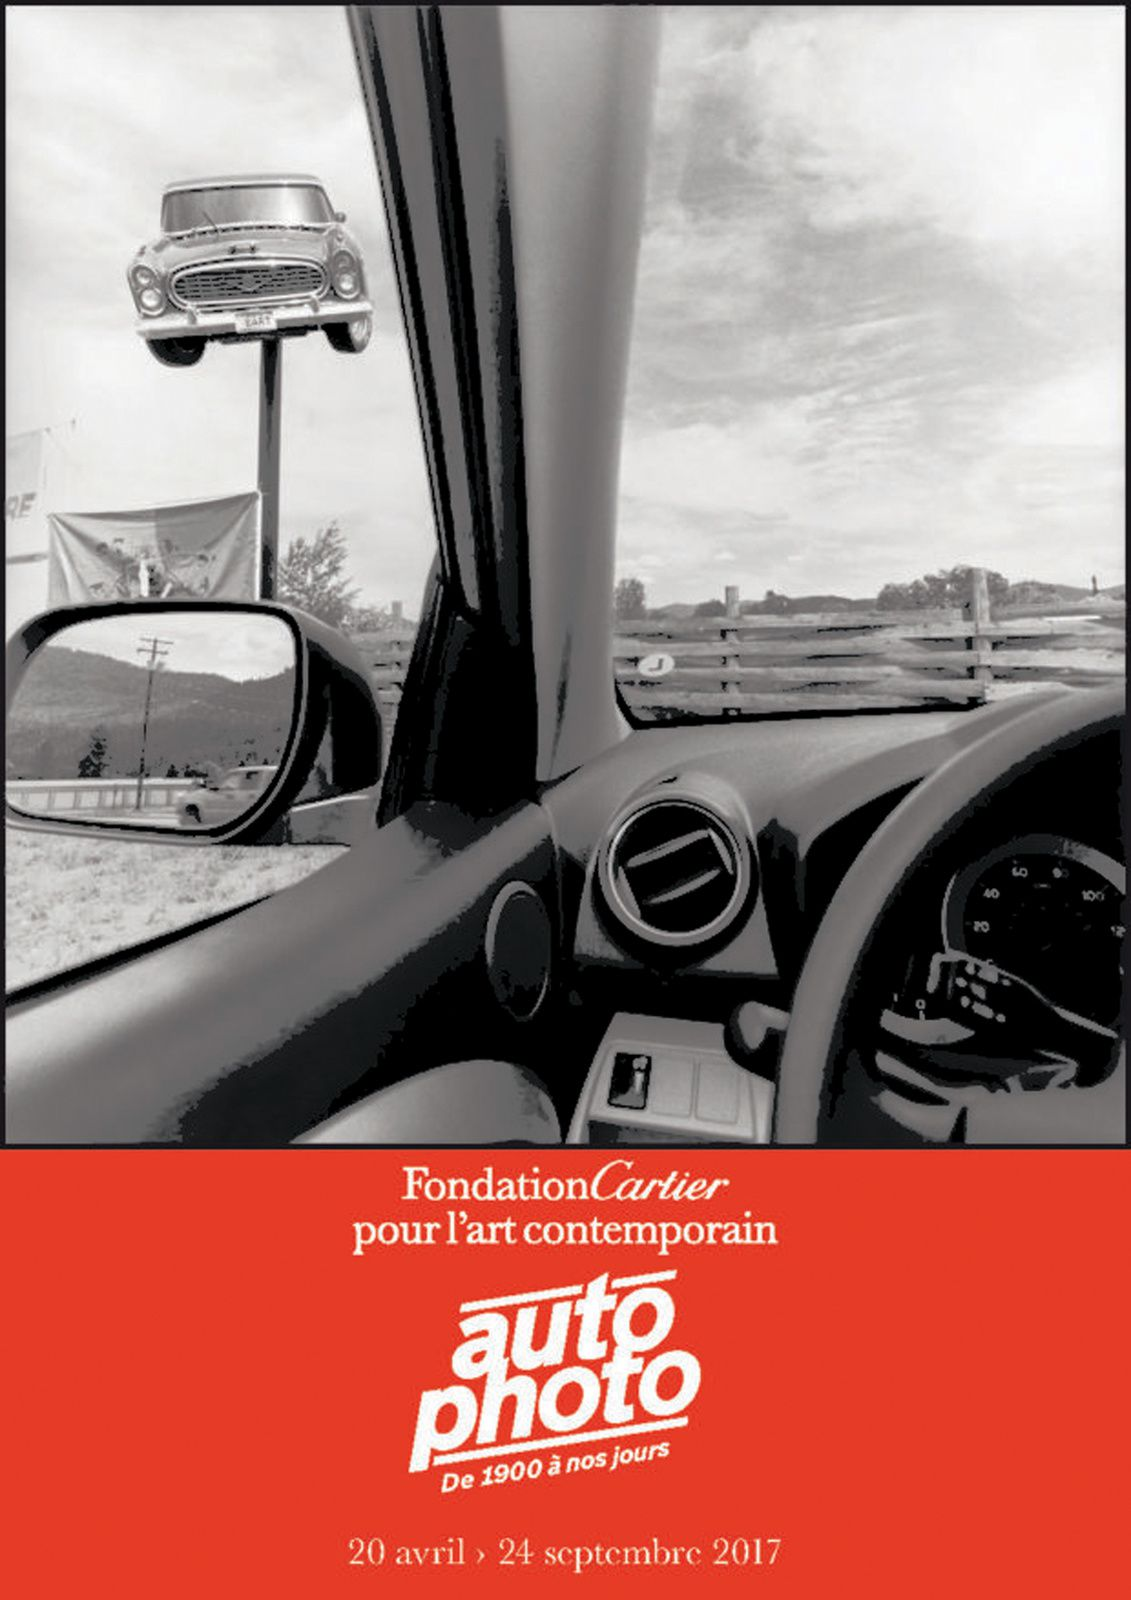 "Expo Photographie Contemporaine: ""Autophoto - Une exploration des relations entre la photographie et l'automobile, de 1900 à nos jours"""